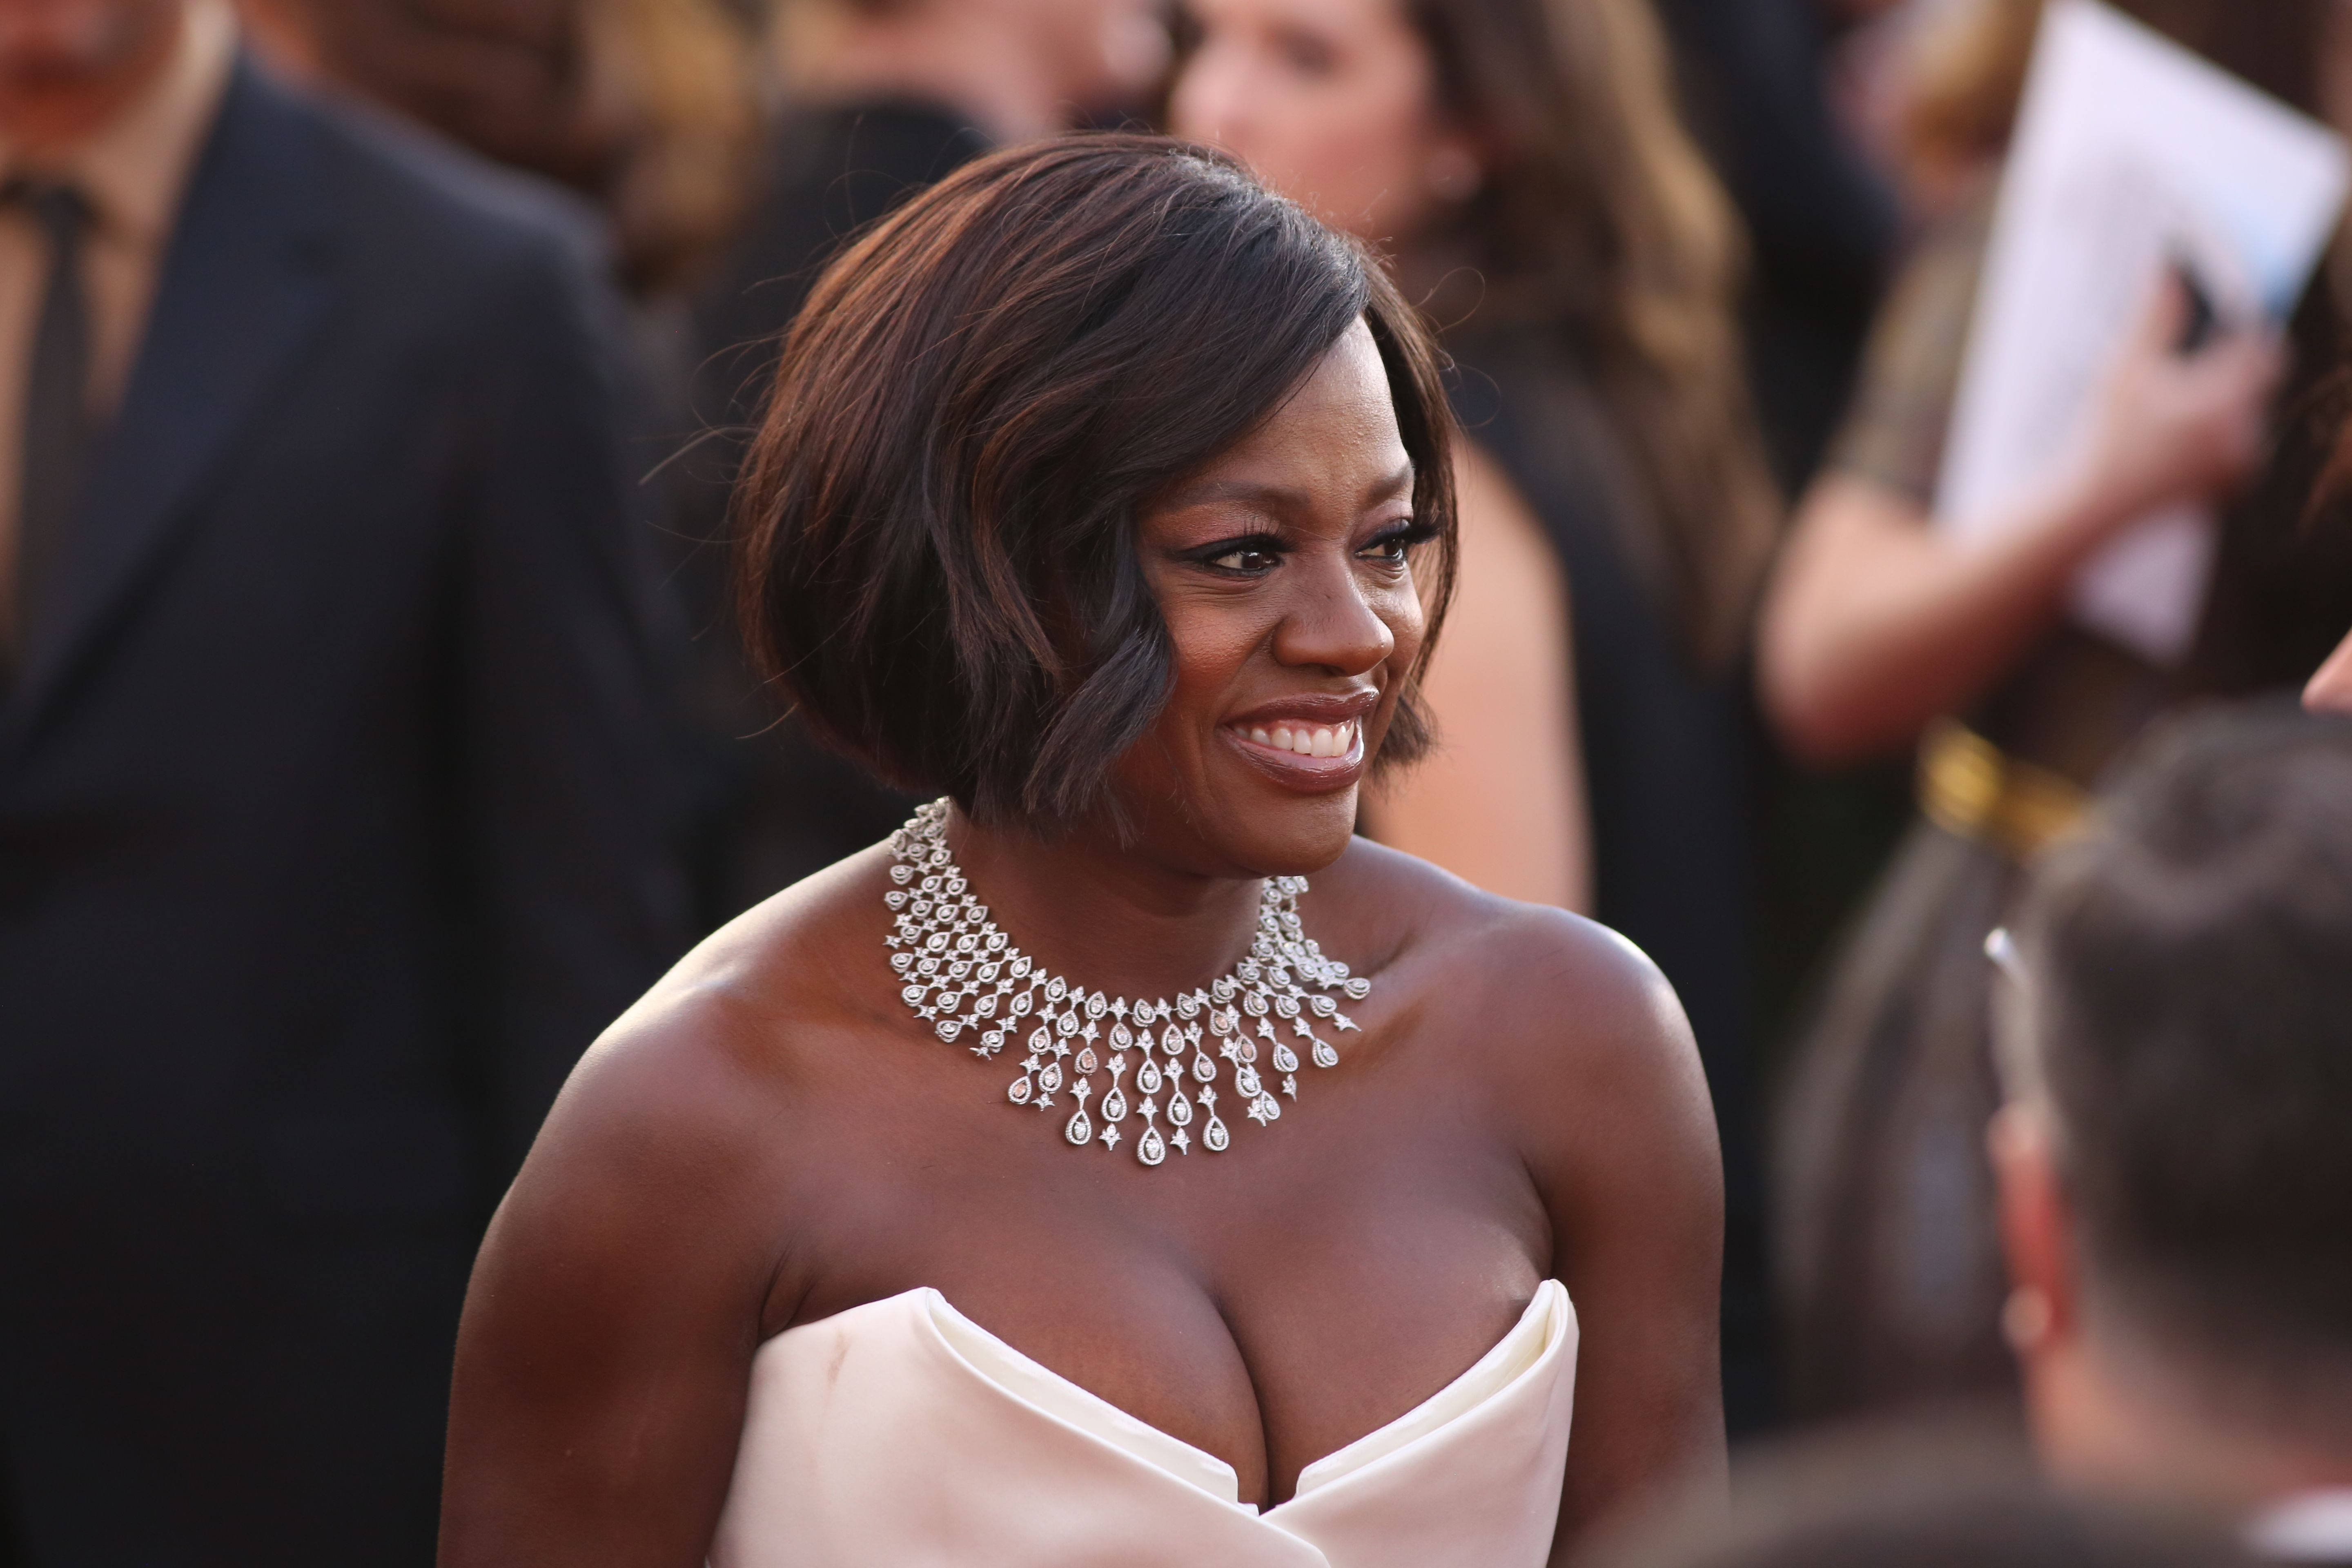 Actress Viola Davis arrives for the 23rd AnnualScreen Actors Guild Awards in Los Angeles, California on January 29, 2017. / AFP / DAVID MCNEW        (Photo credit should read DAVID MCNEW/AFP/Getty Images)